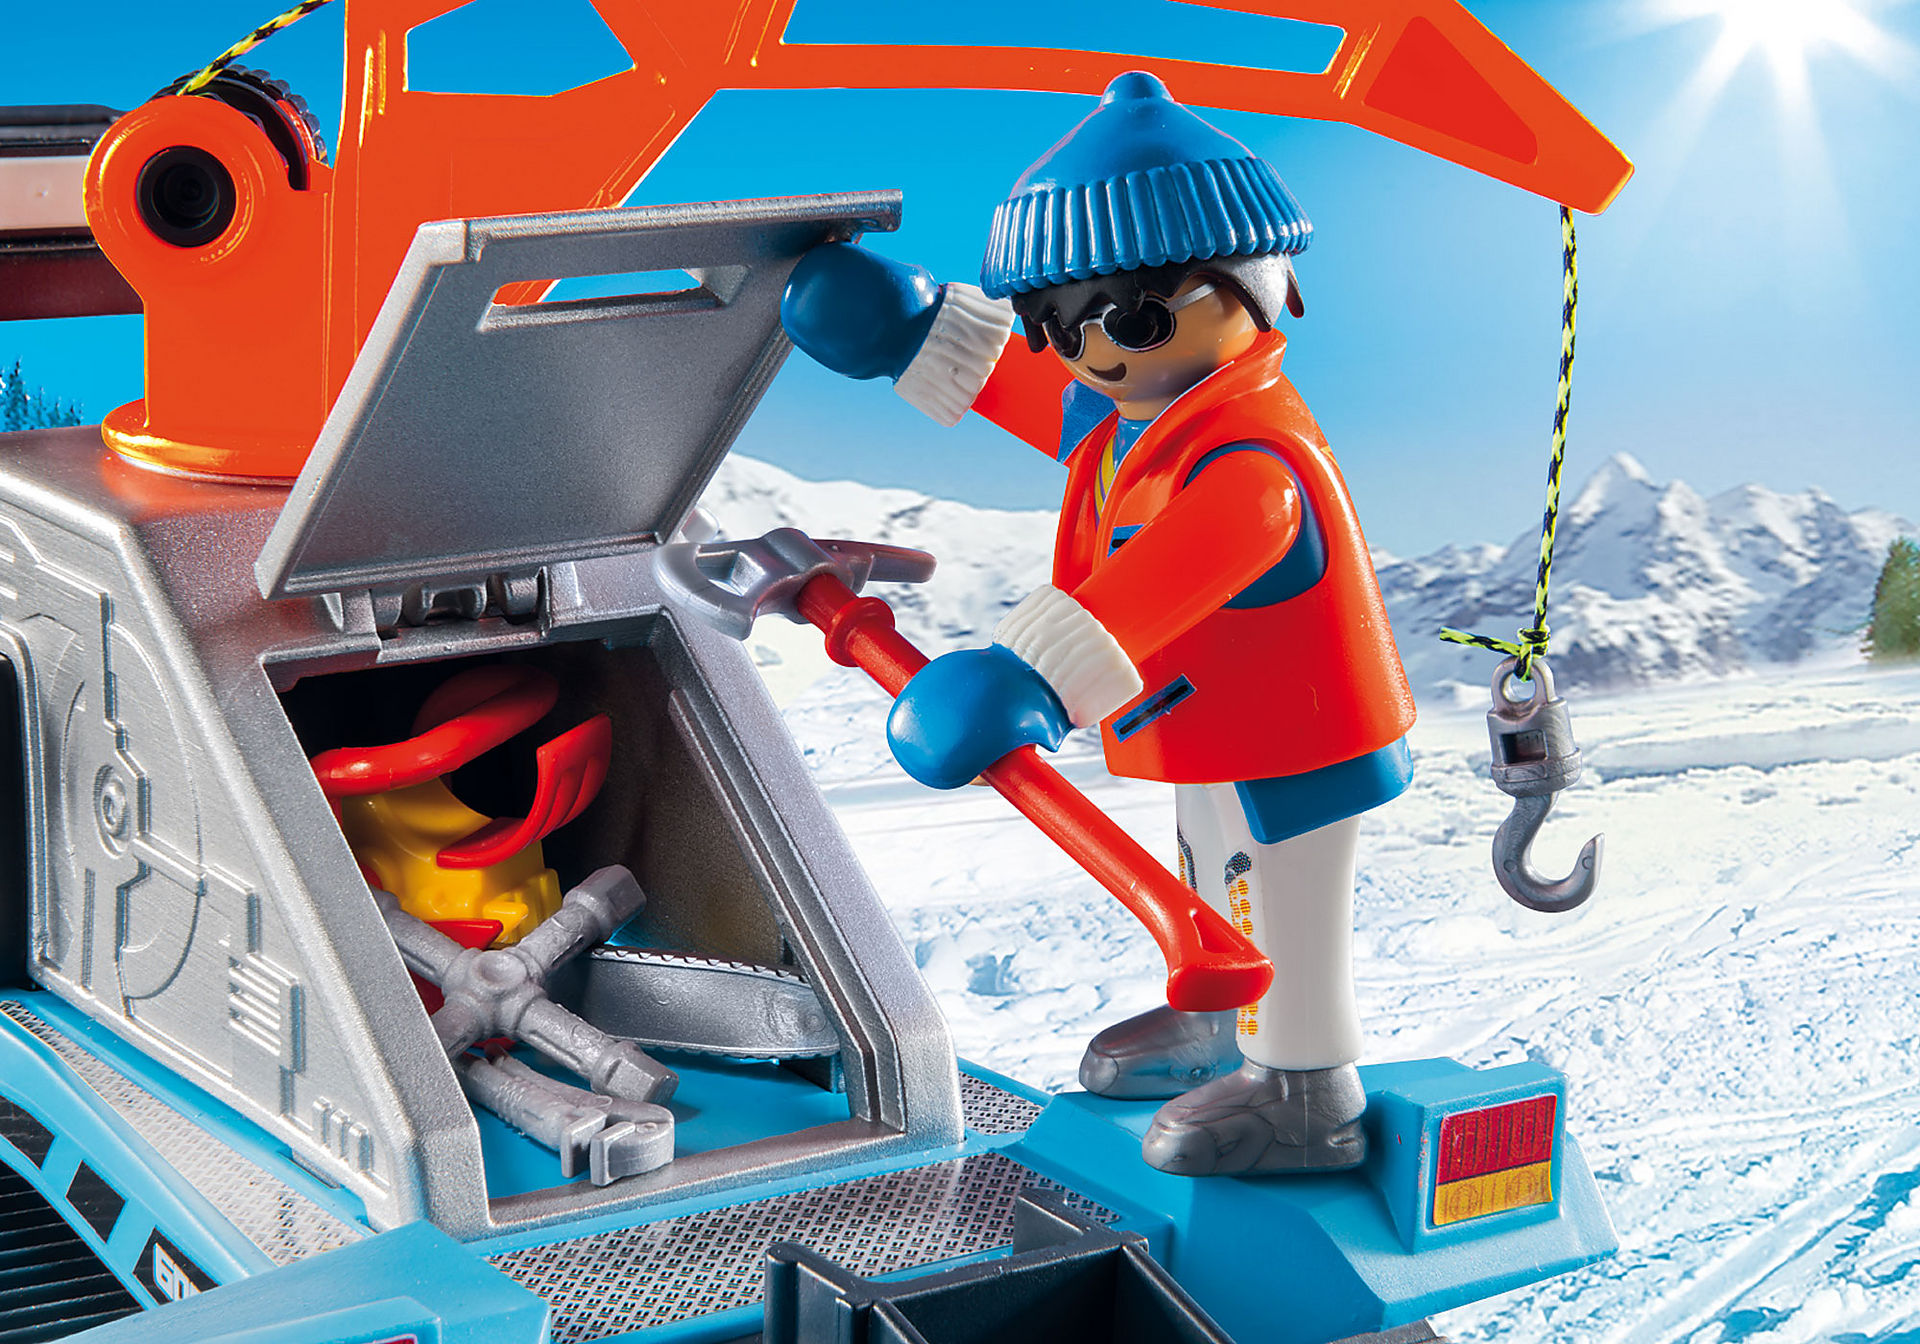 http://media.playmobil.com/i/playmobil/9500_product_extra1/Snow Plow